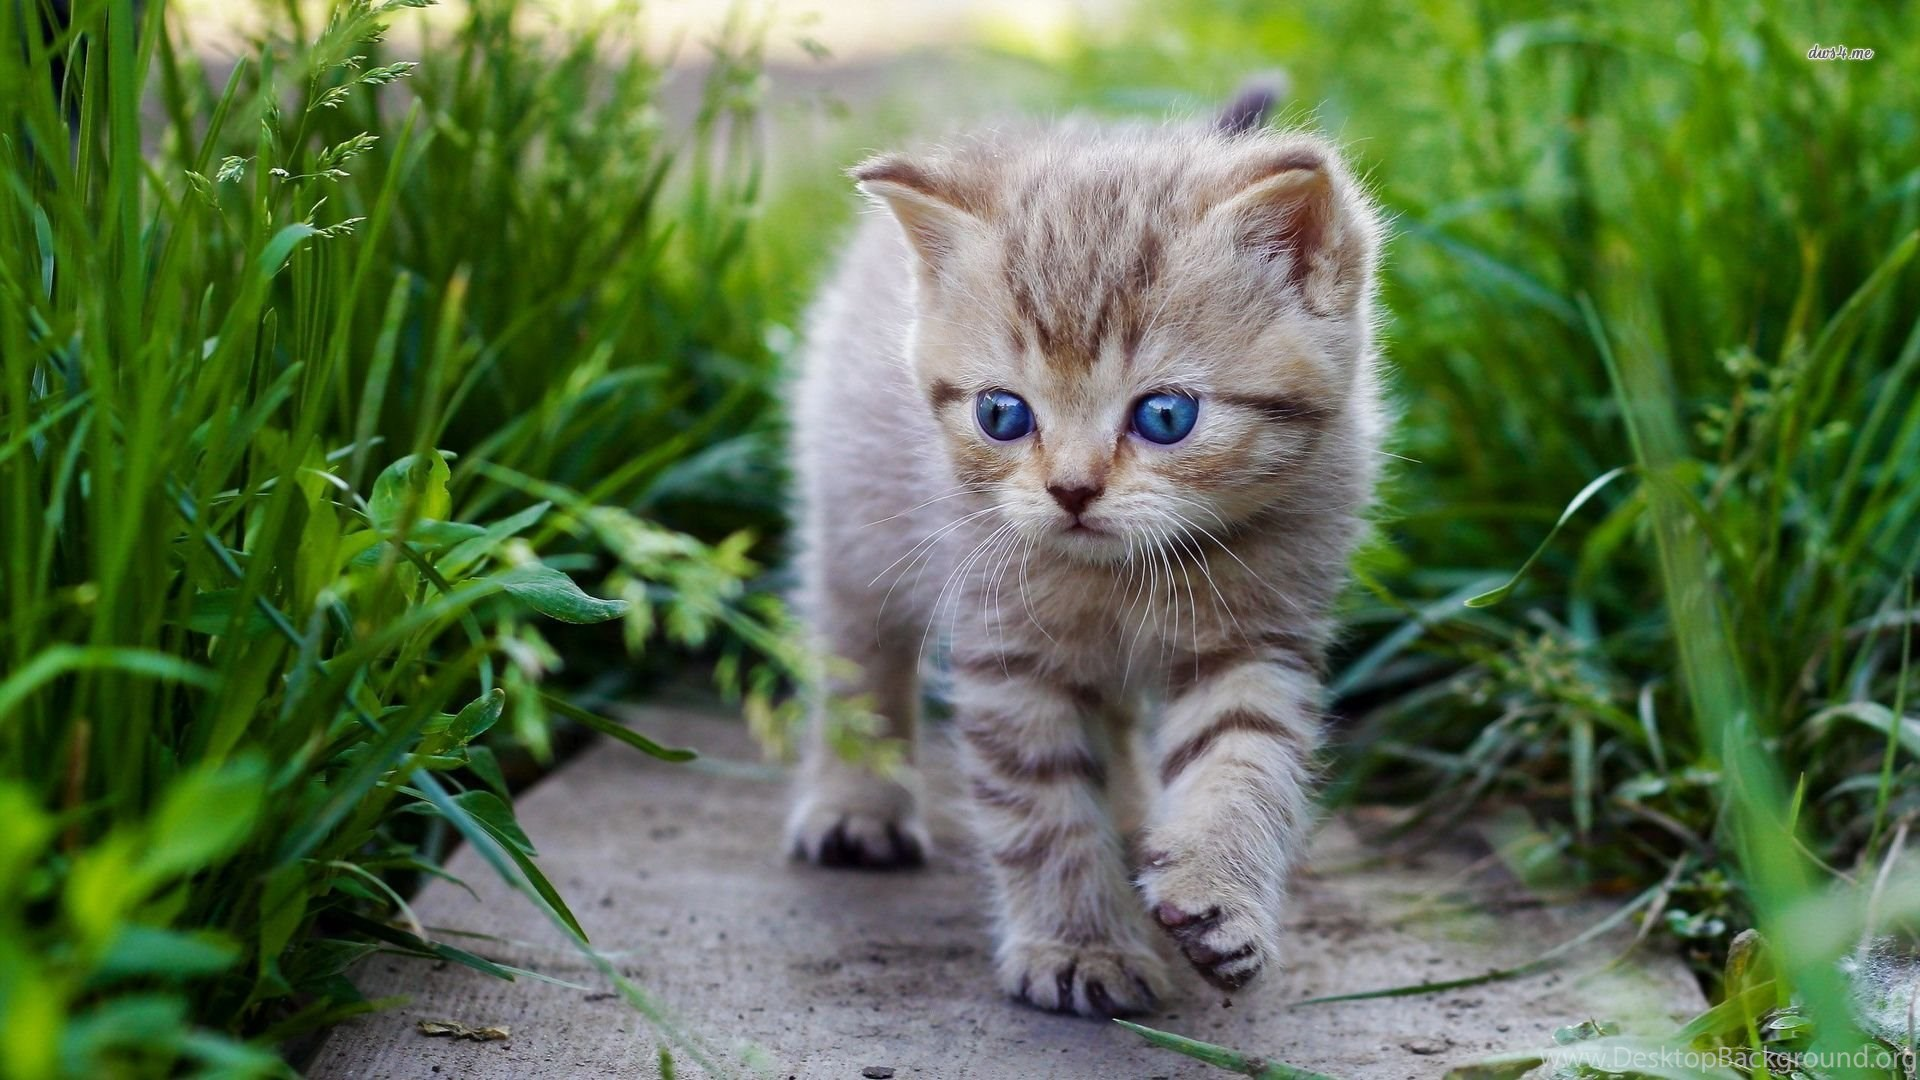 High Resolution Cute Baby Animal Kitty Cat Wallpapers Hd 11 Full